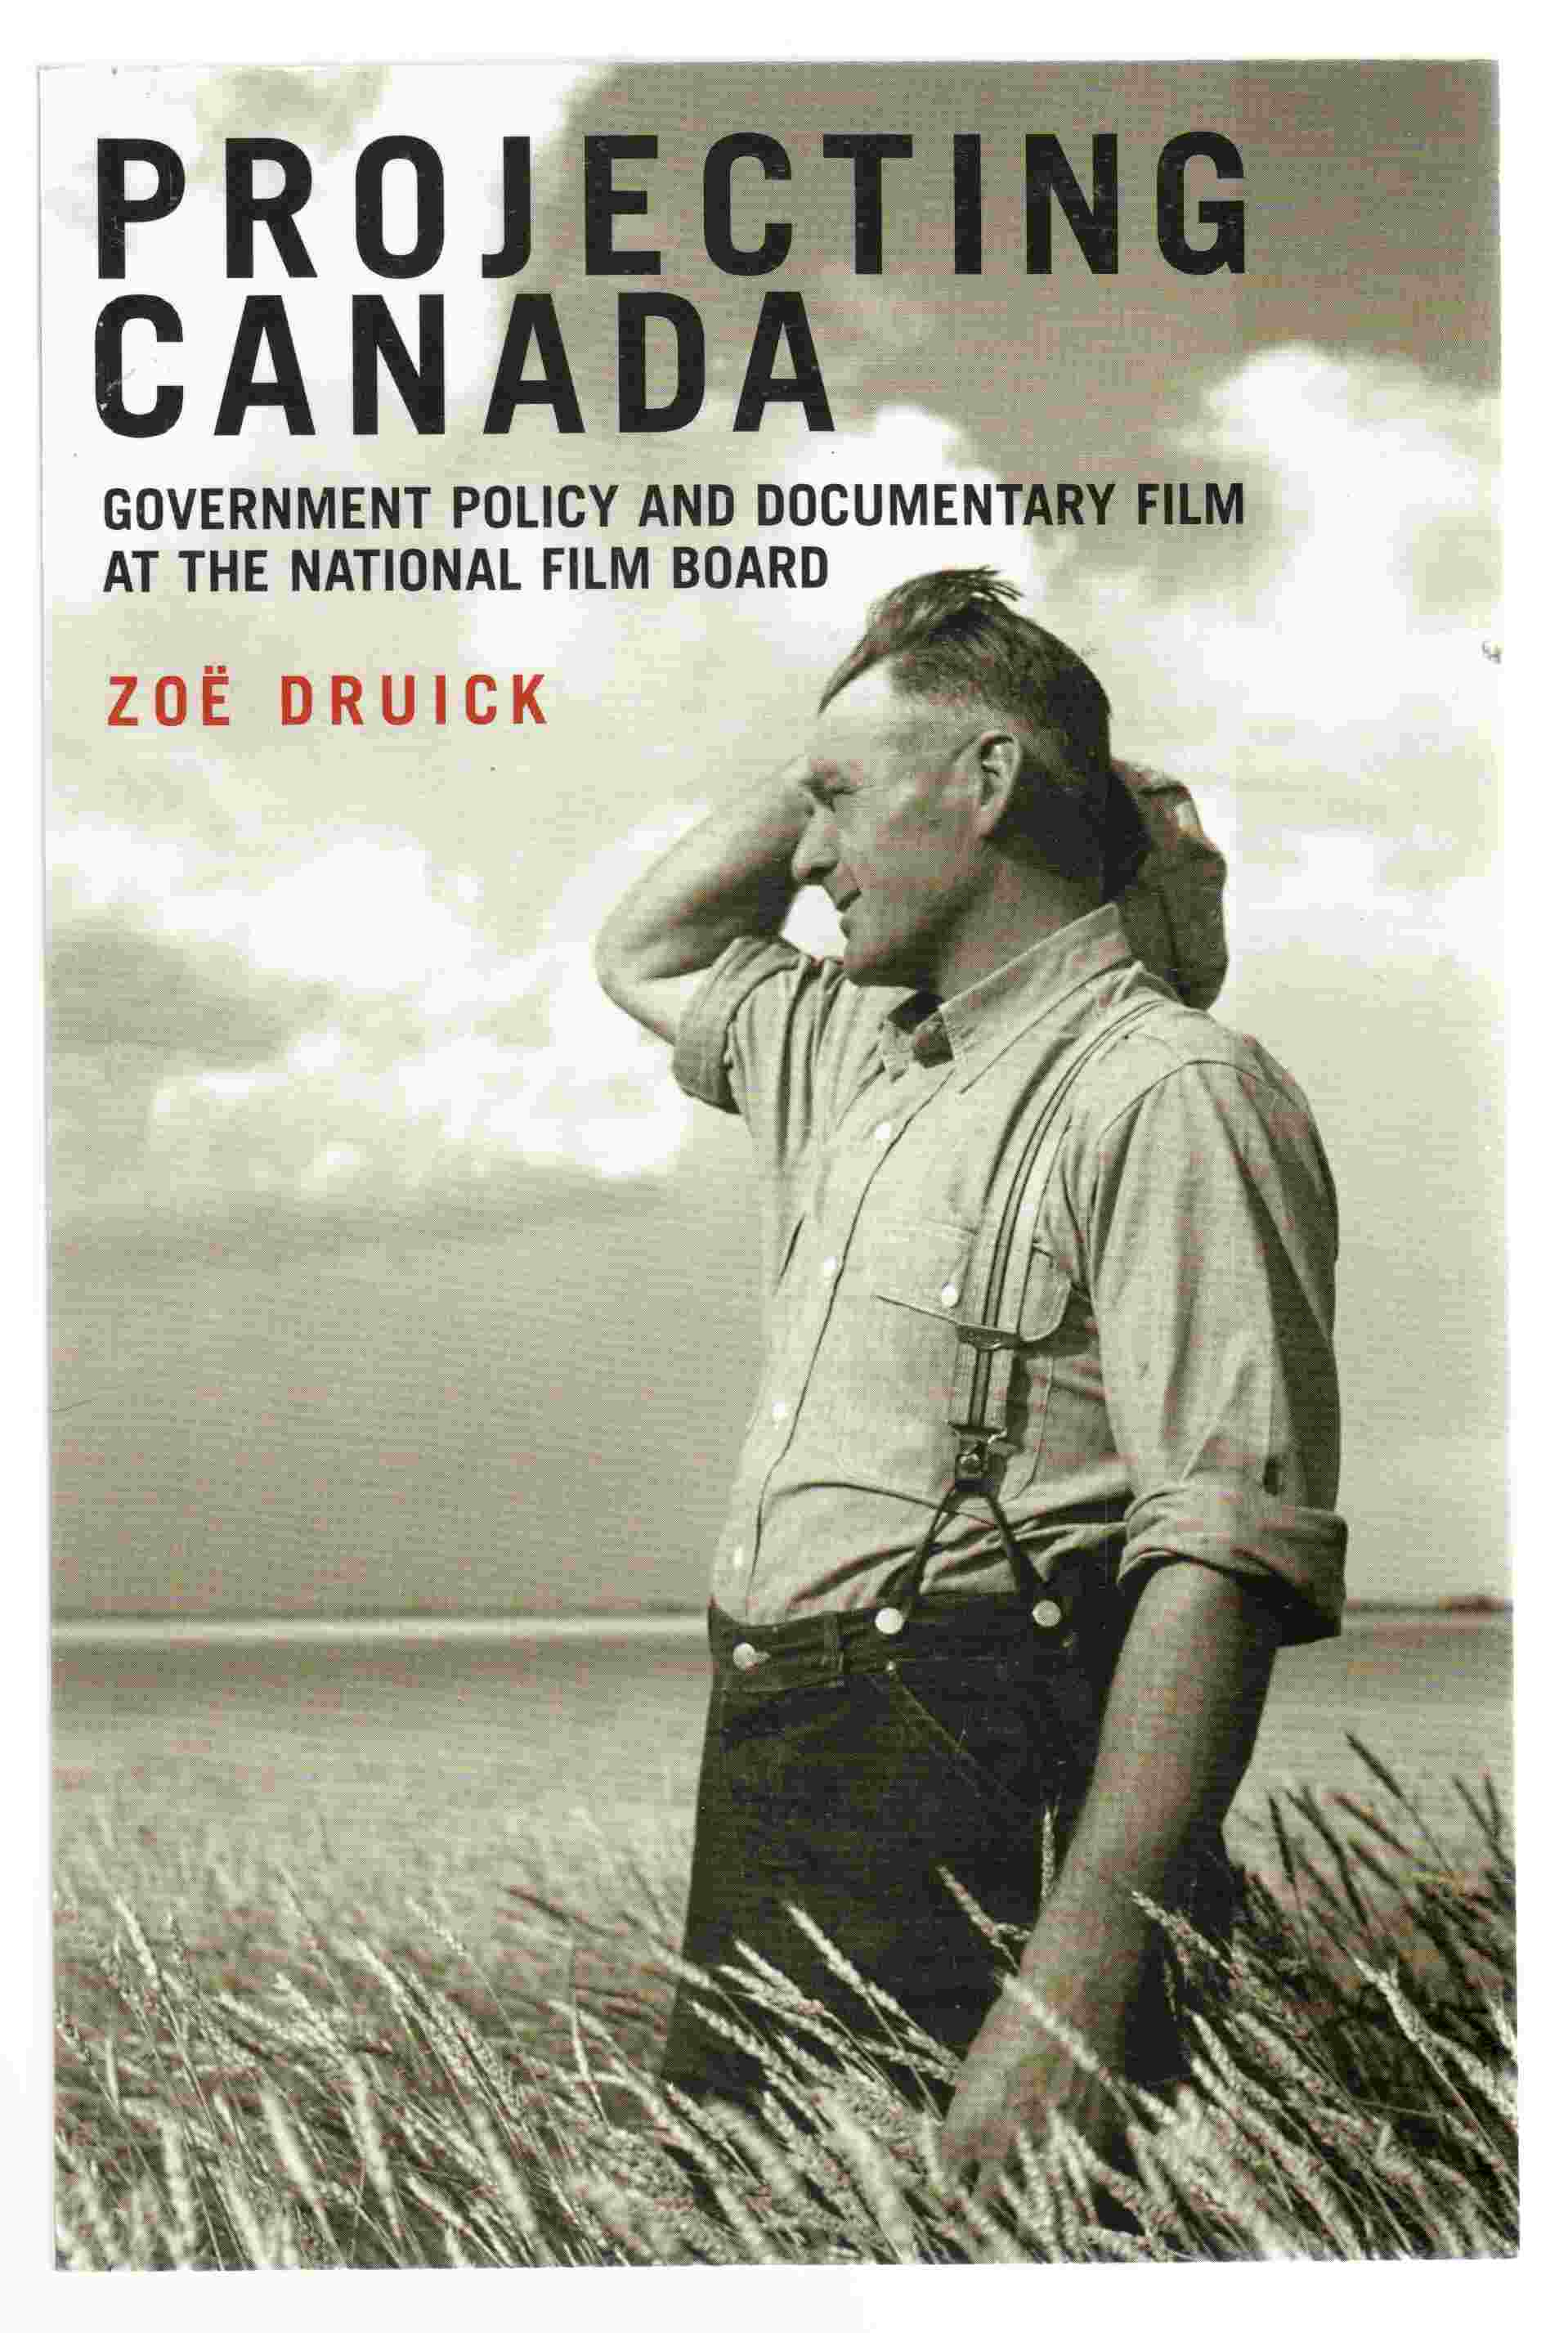 Image for Projecting Canada Government Policy and Documentary Film At the National Film Board